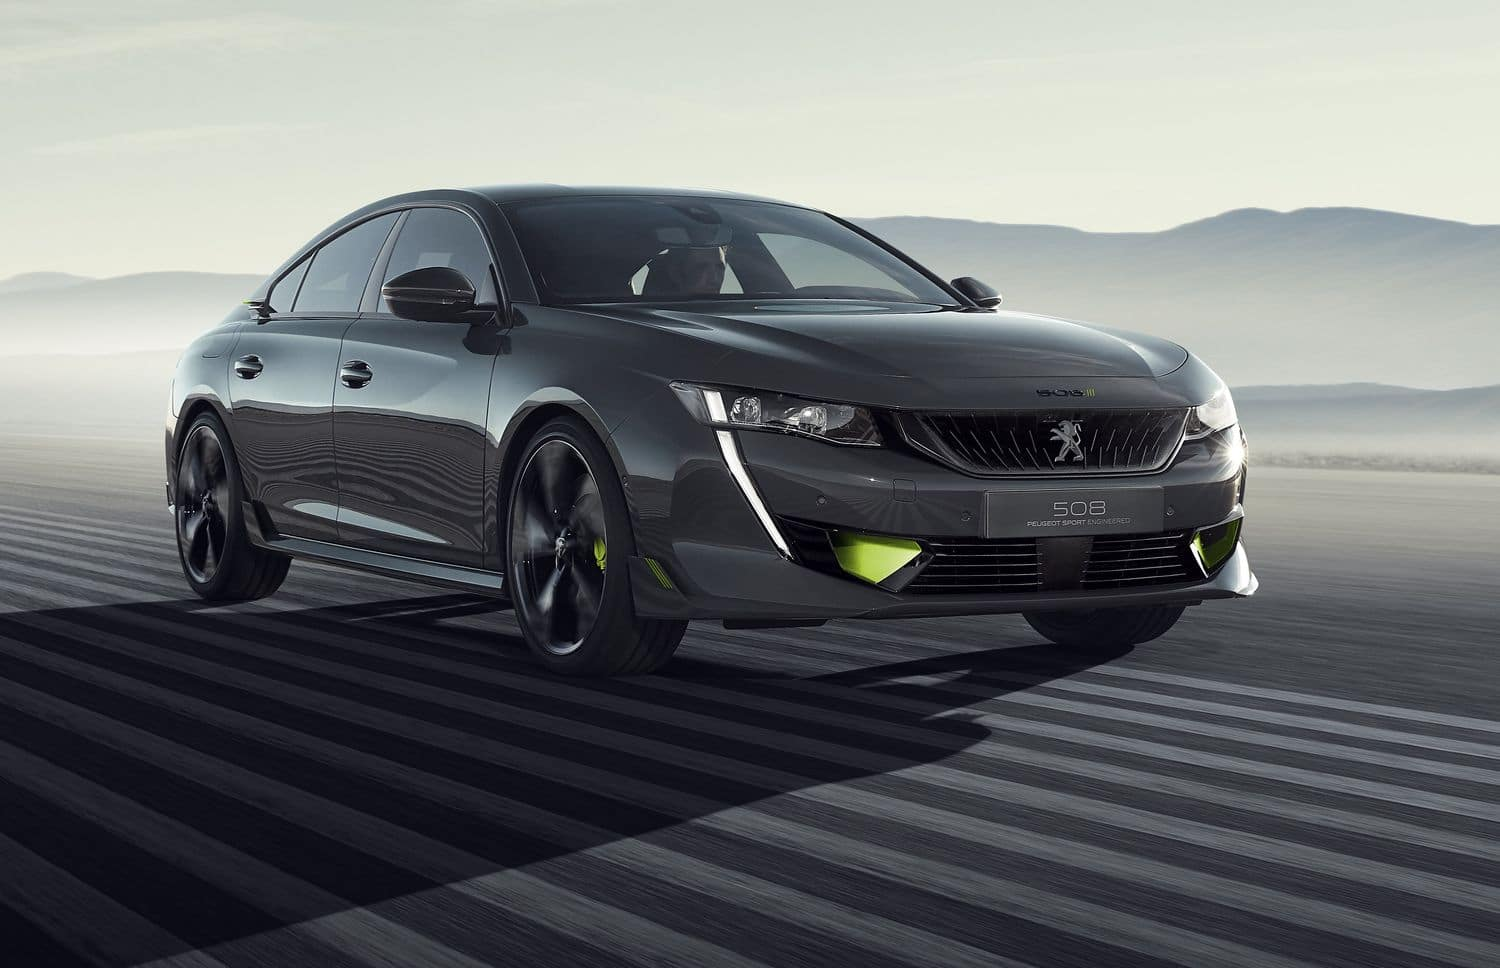 508 Peugeot Sport Engineered - Vue 3/4 avant